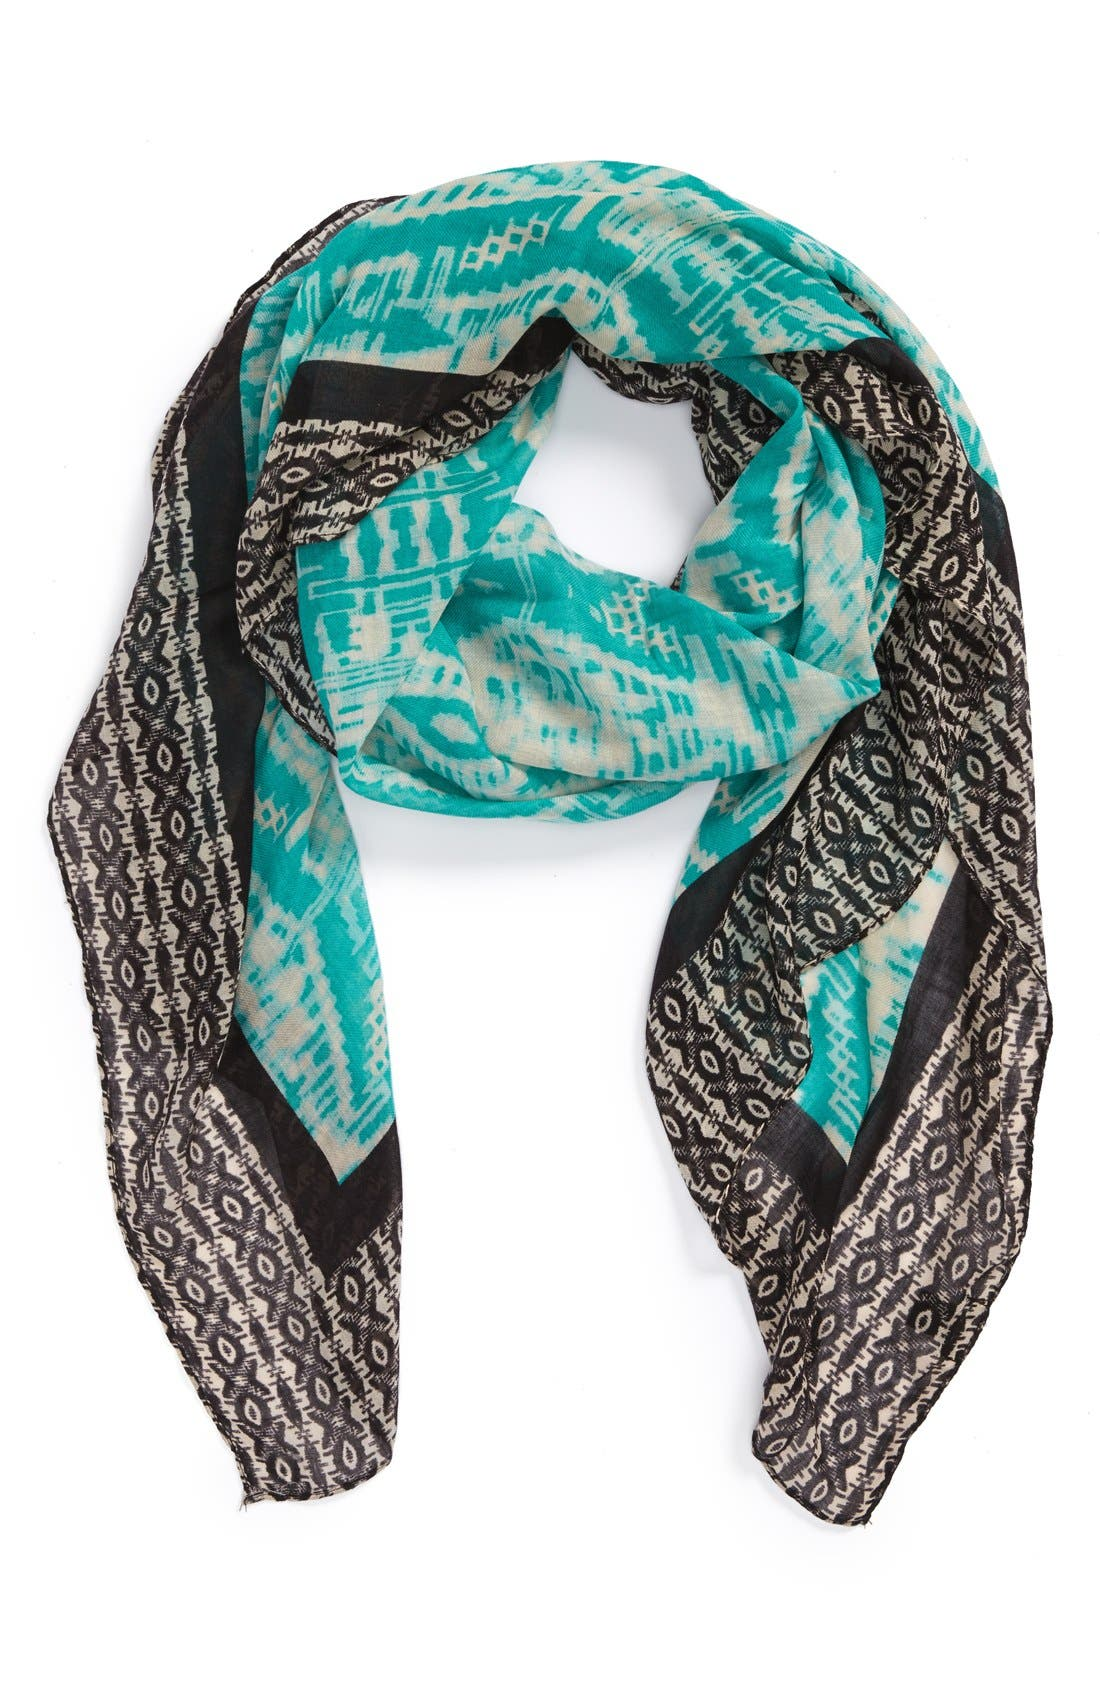 Main Image - Roffe Accessories 'World Traveler' Scarf